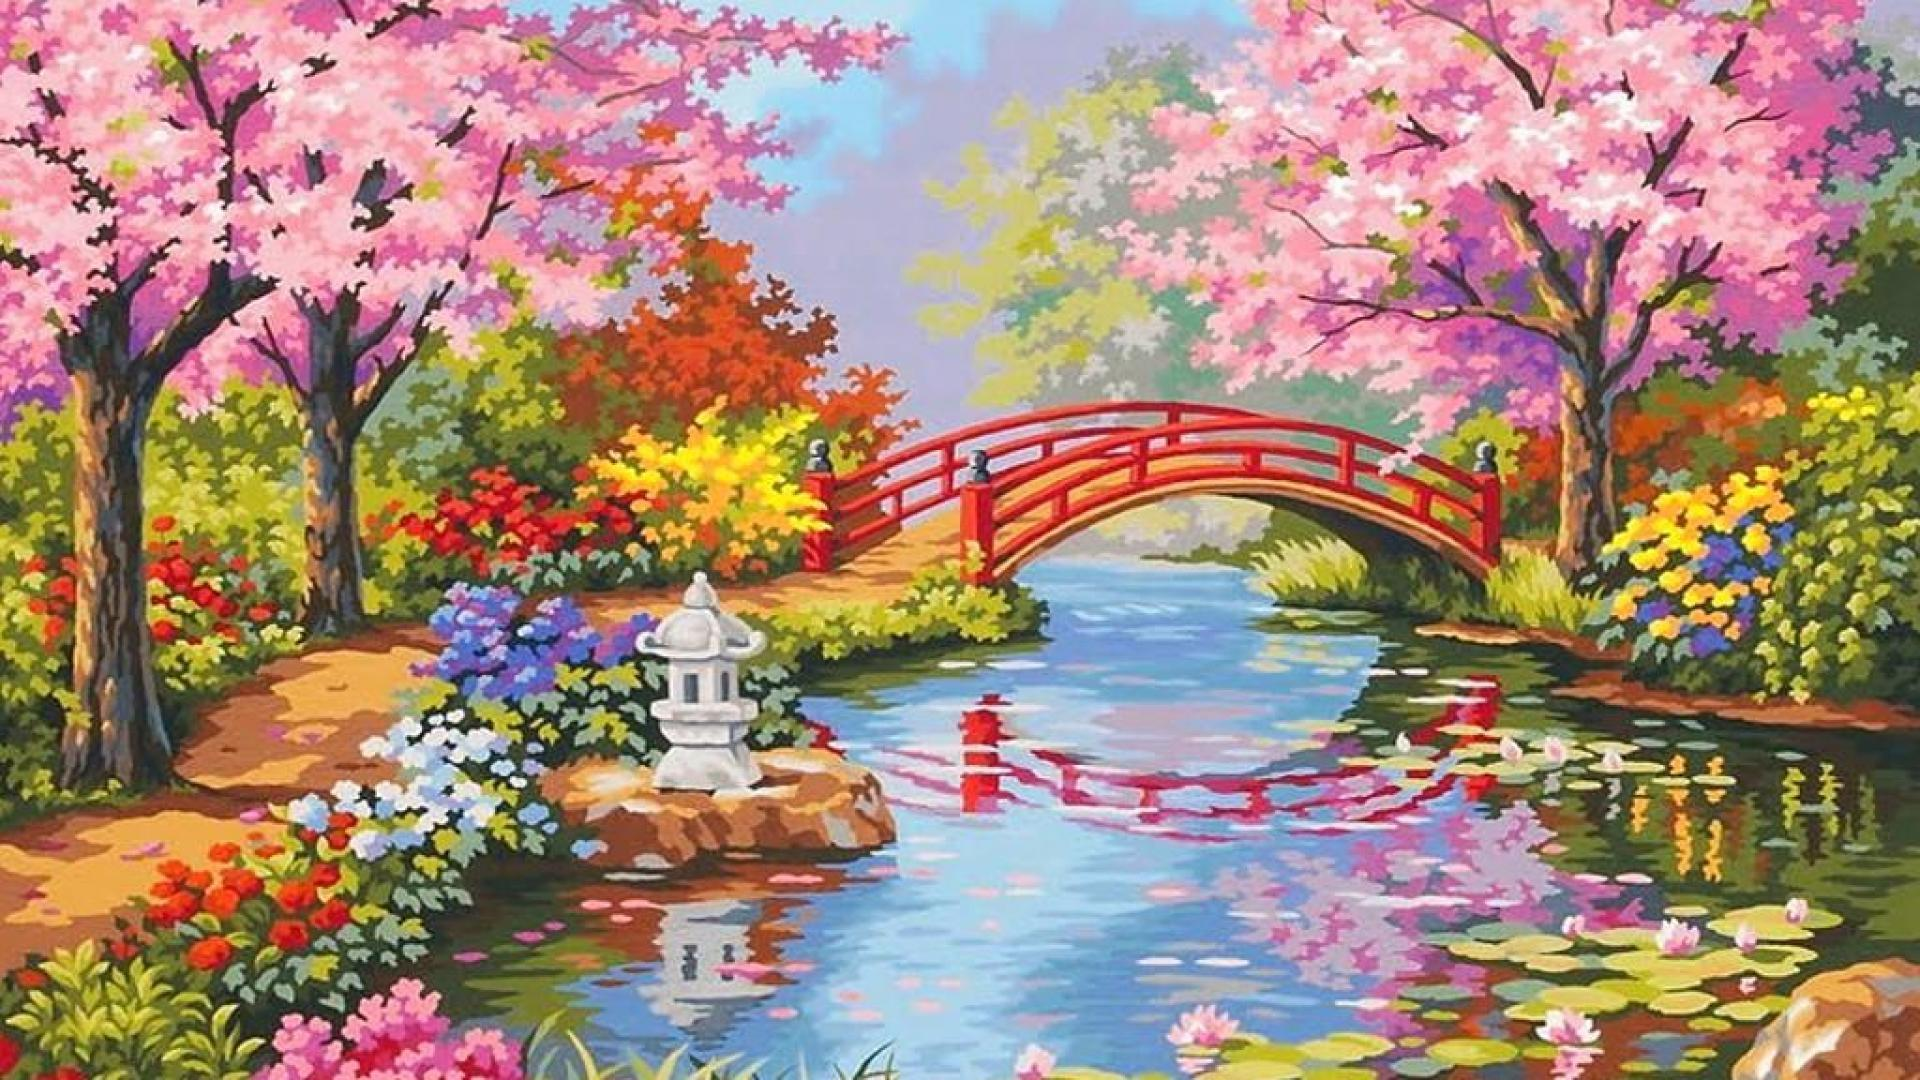 Japanese flower garden wallpaper awesome 716789 inspiration